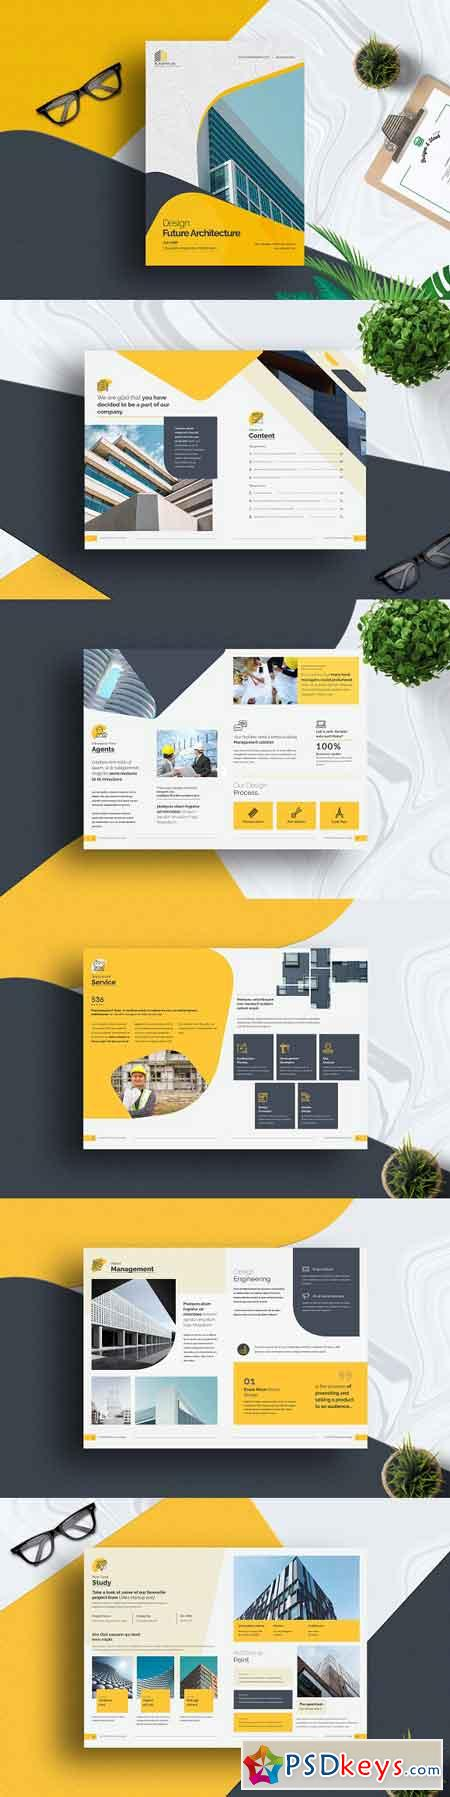 Brochure Indesign Template 2967040